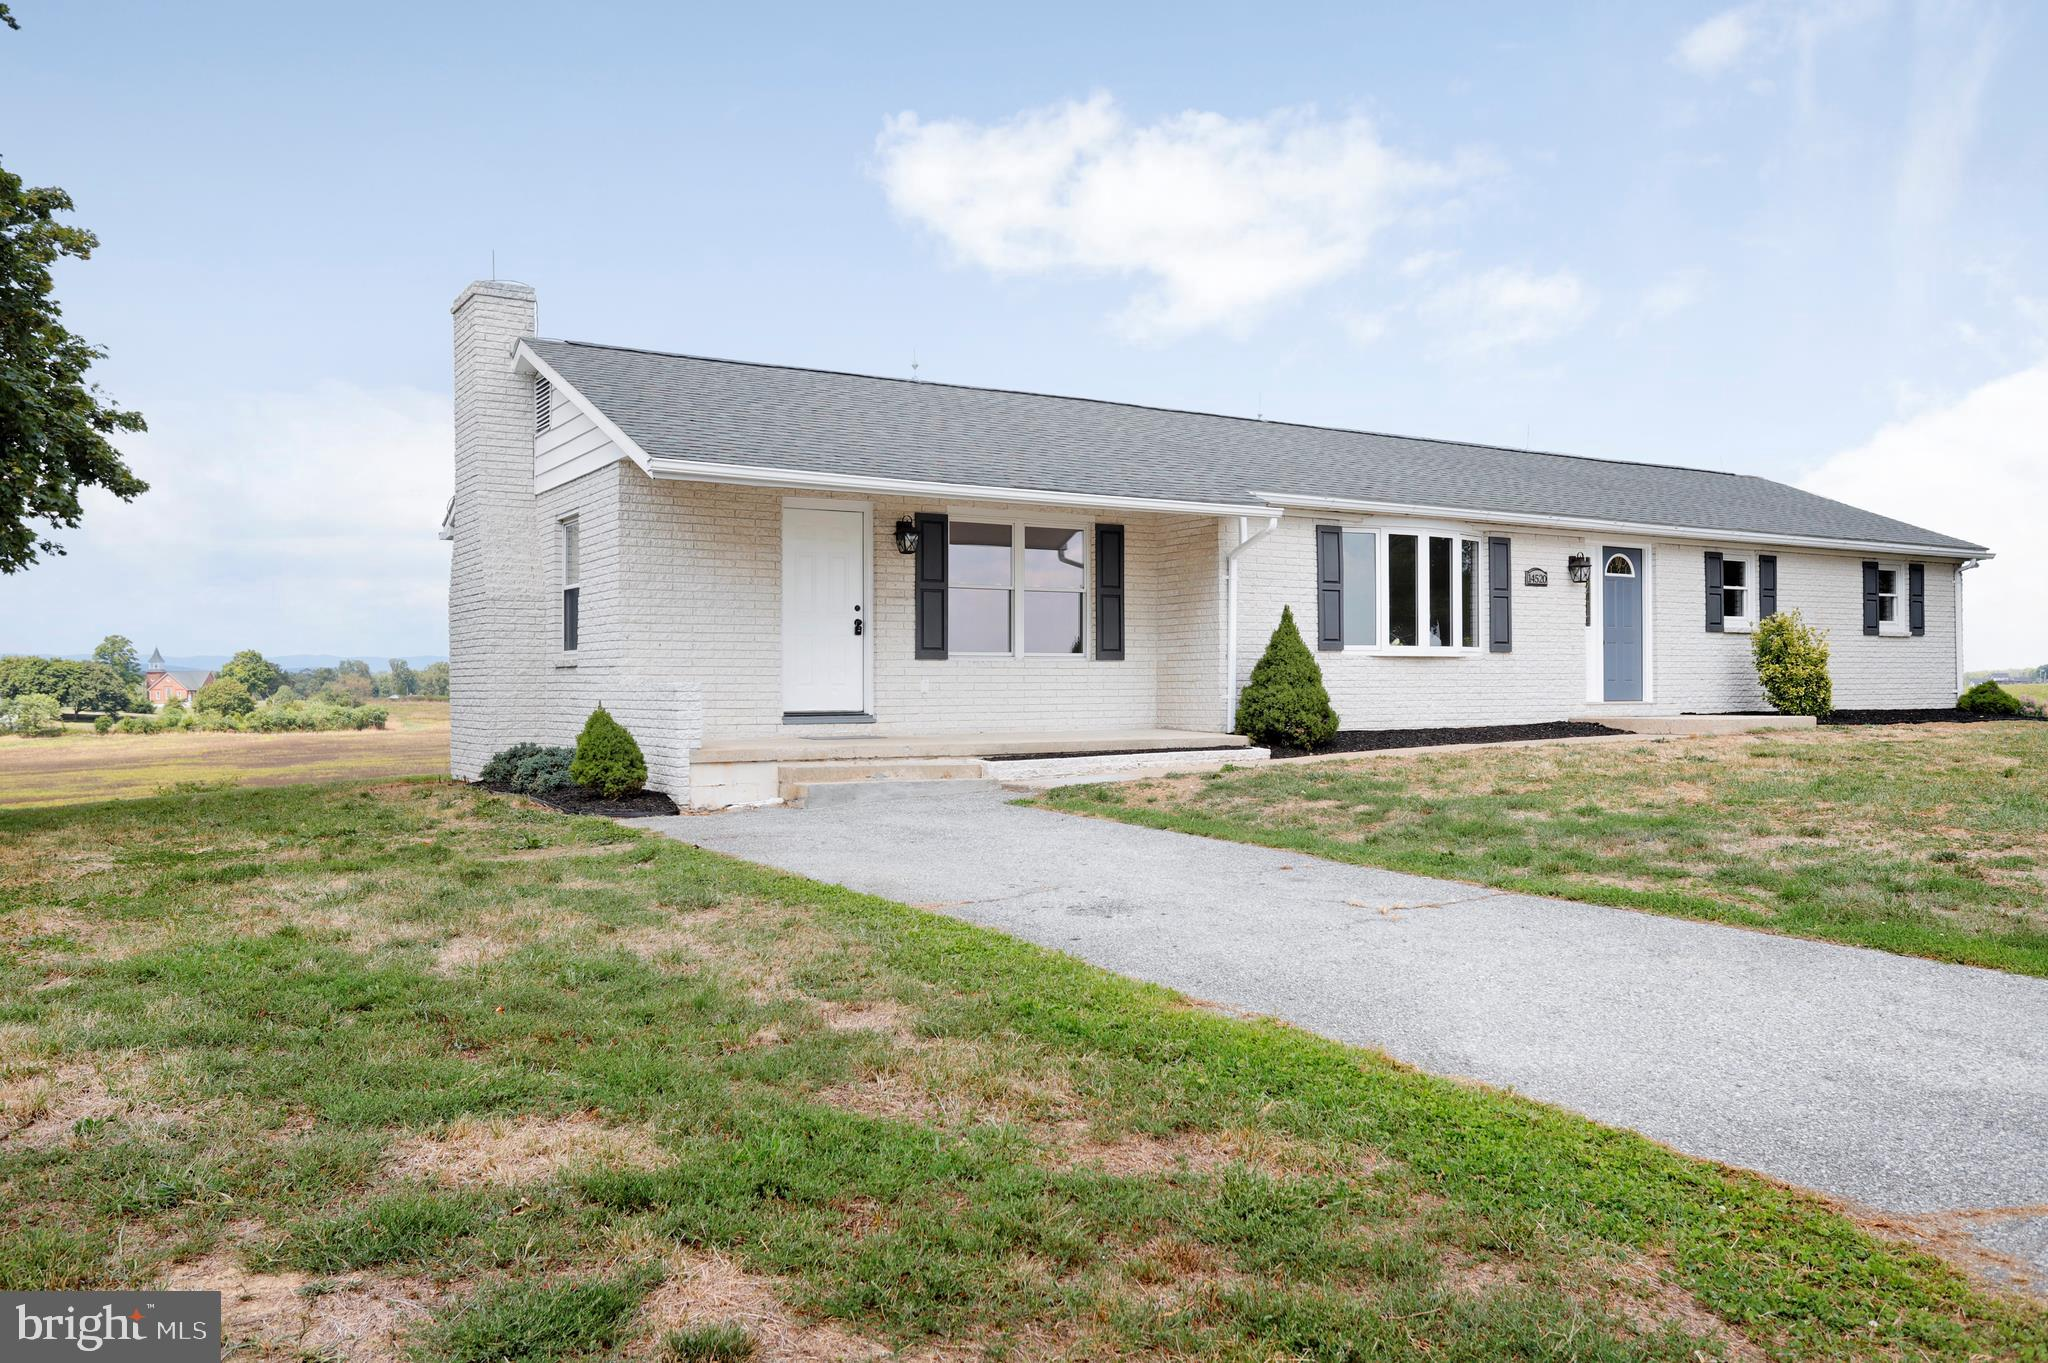 14520 FAIRVIEW HILL LANE, CLEAR SPRING, MD 21722